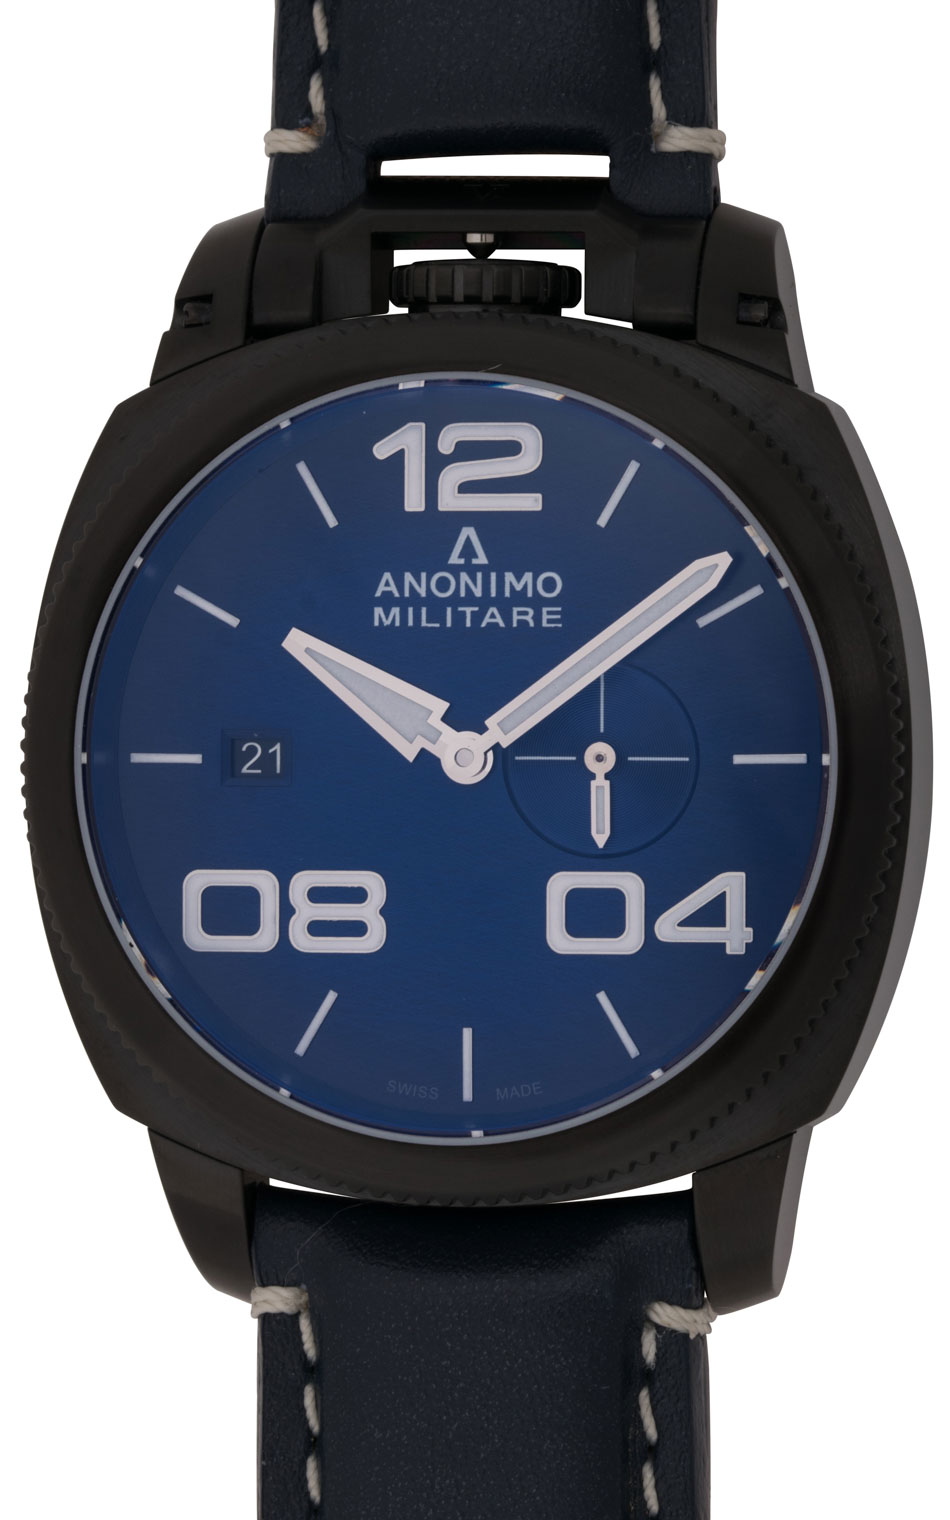 Anonimo Watch for sale | Only 2 left at -65%